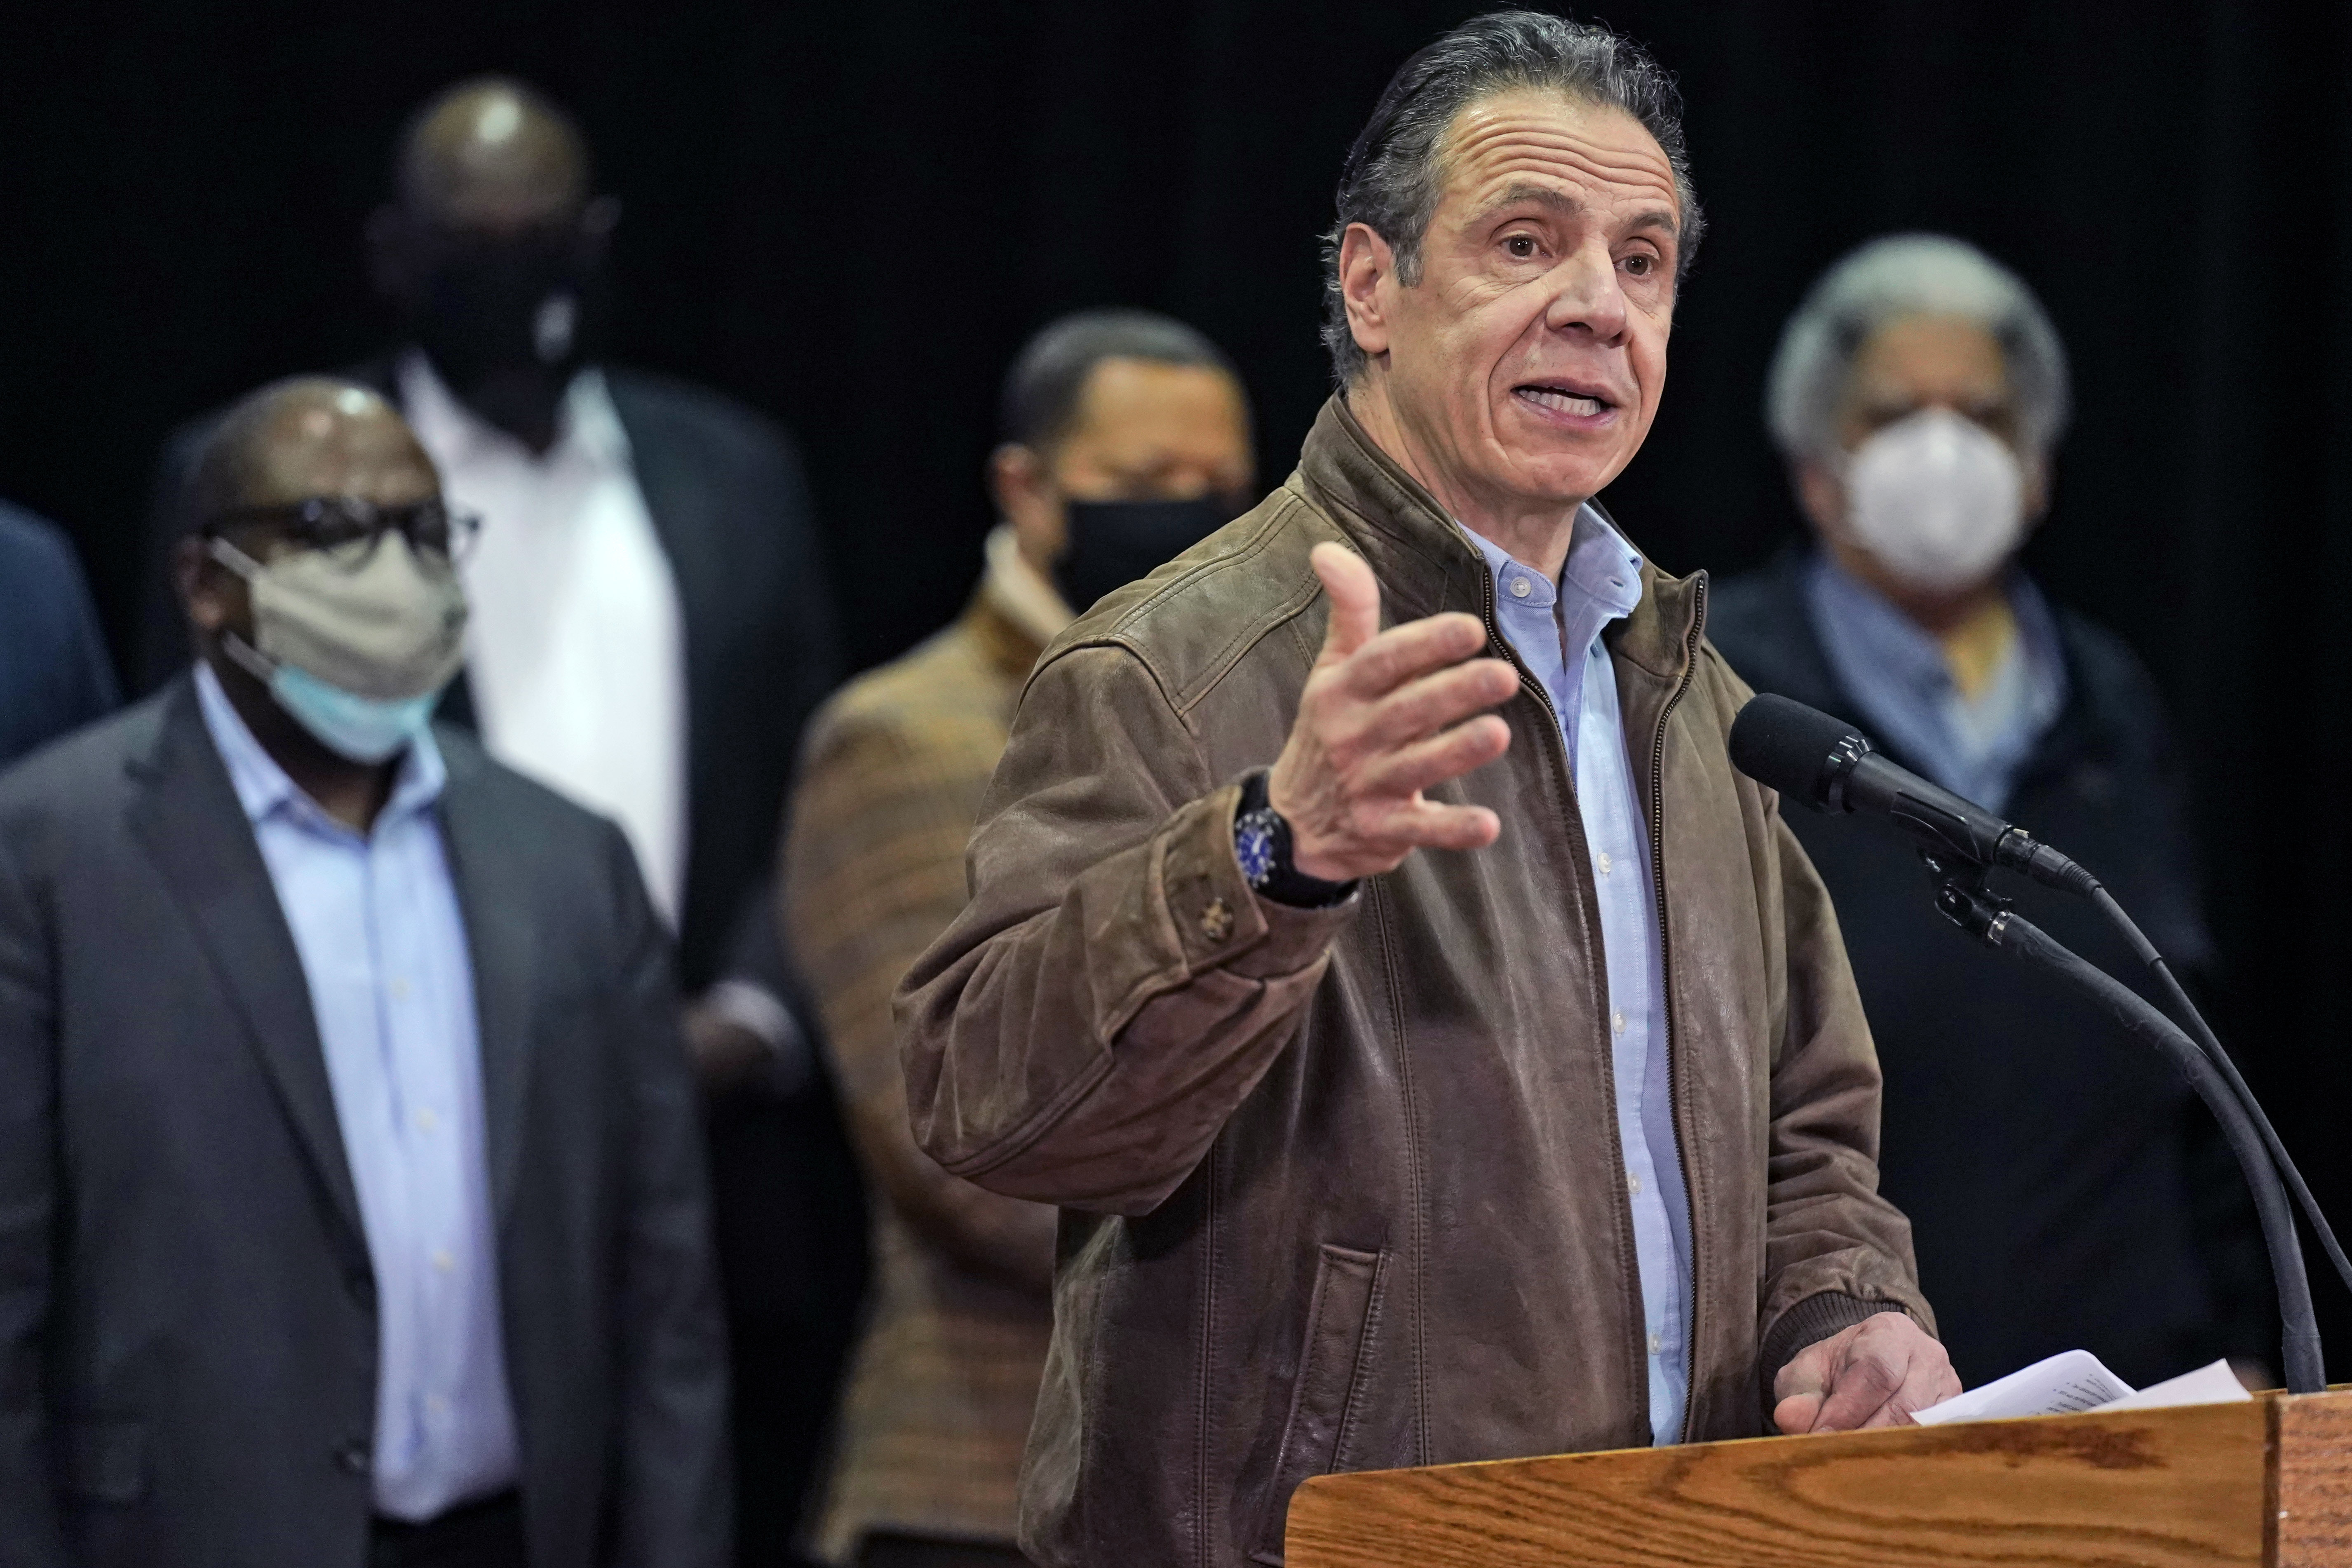 New York Gov. Andrew Cuomo speaks during a press conference before the opening of a mass COVID-19 vaccination site in the Queens,  New York, on Feb. 24, 2021.